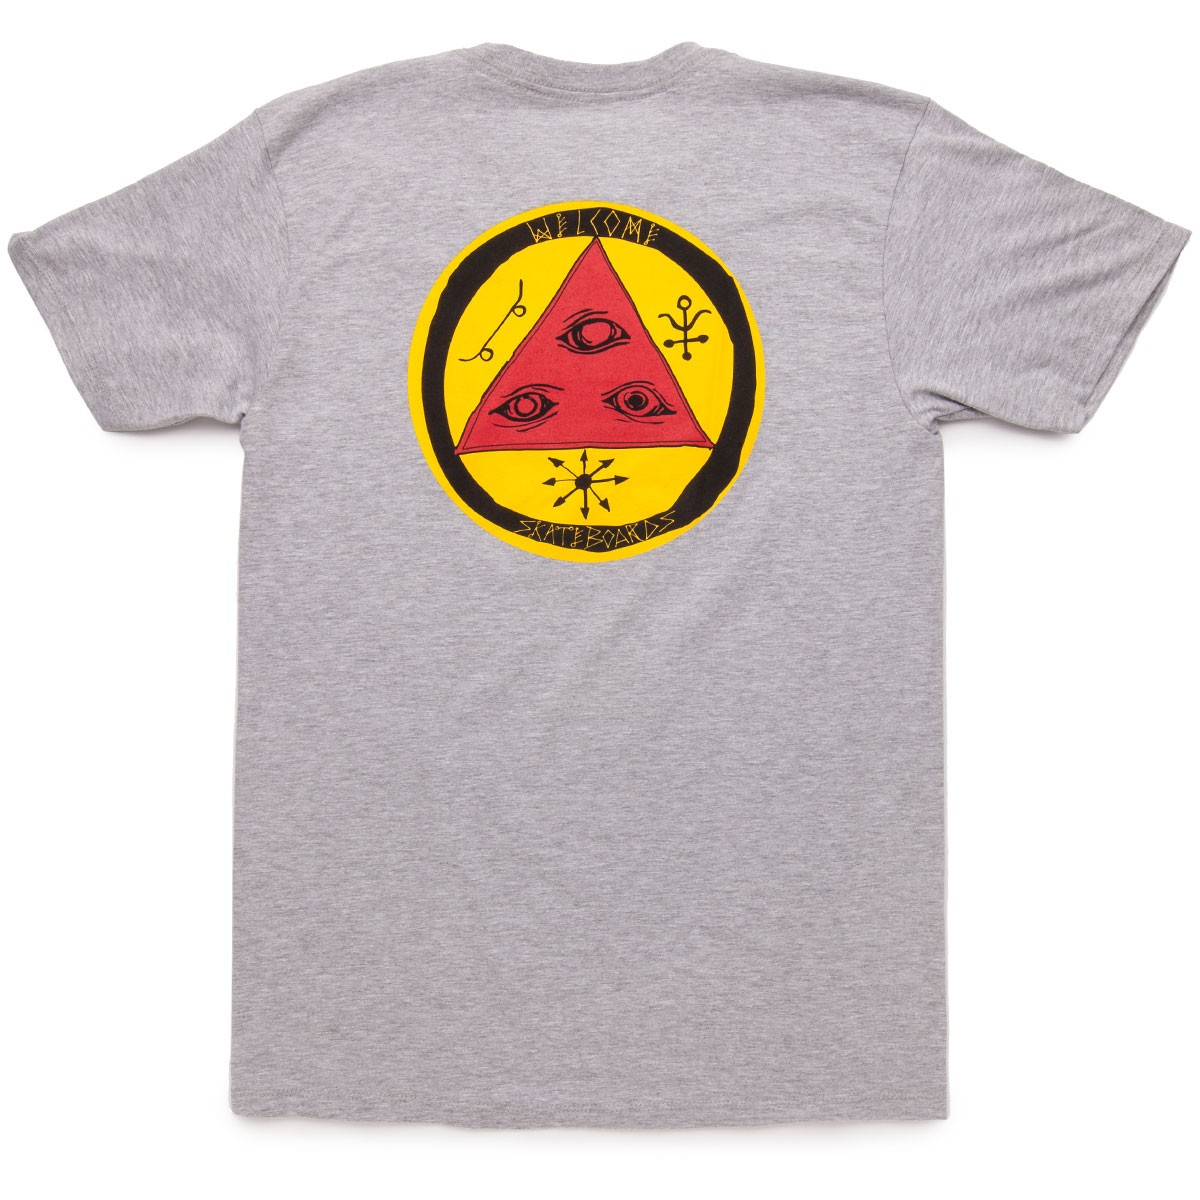 Welcome Talisman Tri-Color T-Shirt - Heather/Red/Yellow